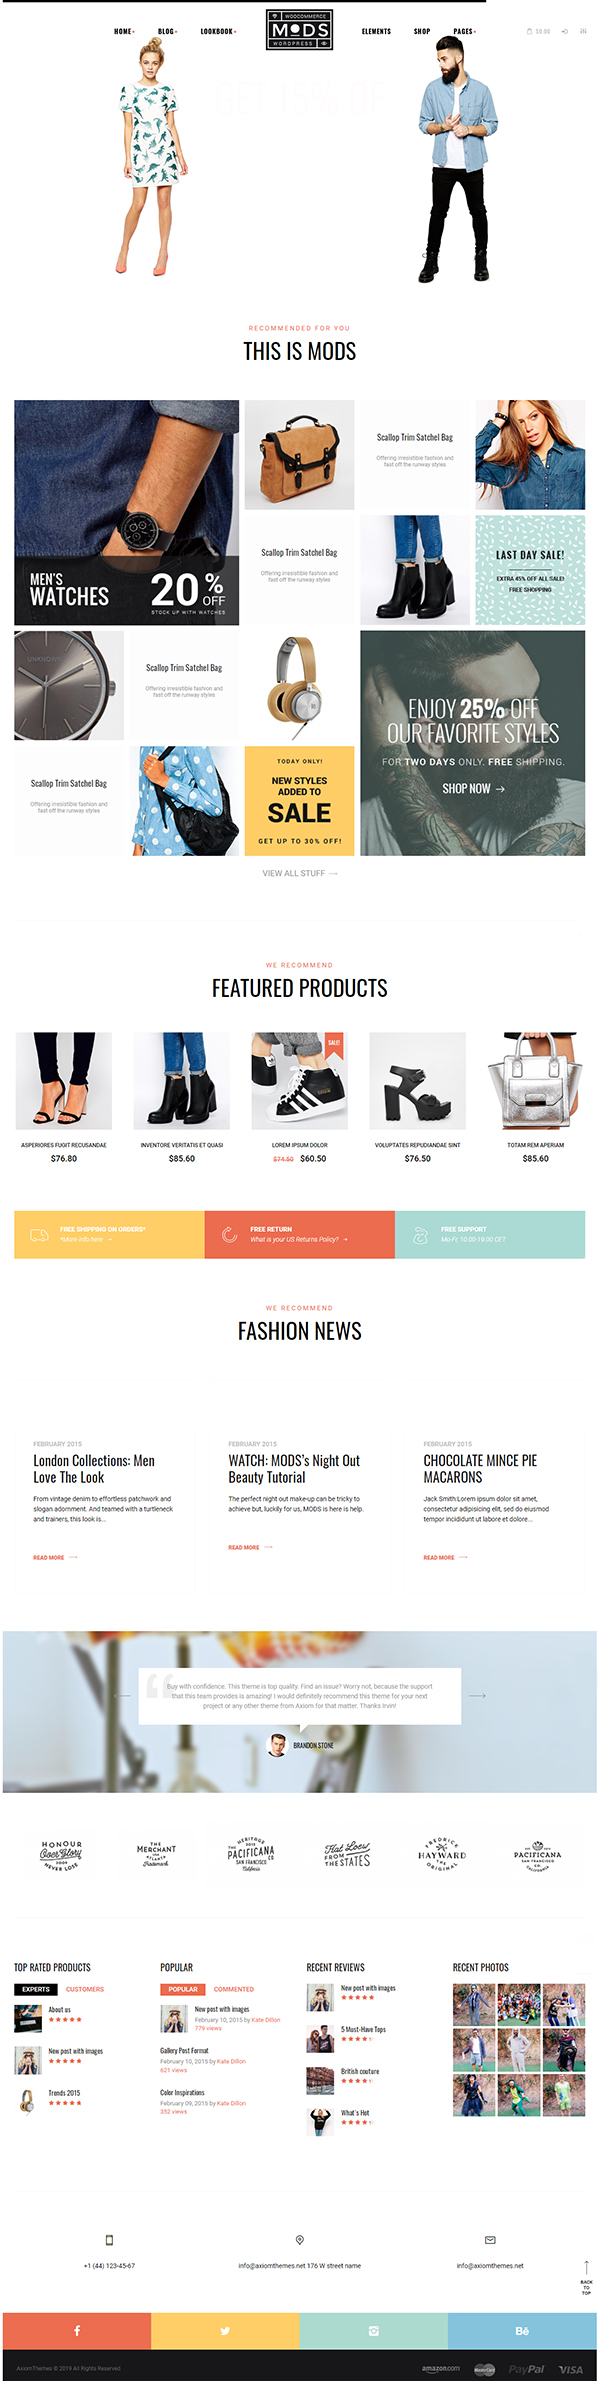 MODS - Shop & Fashion Blog WP Theme